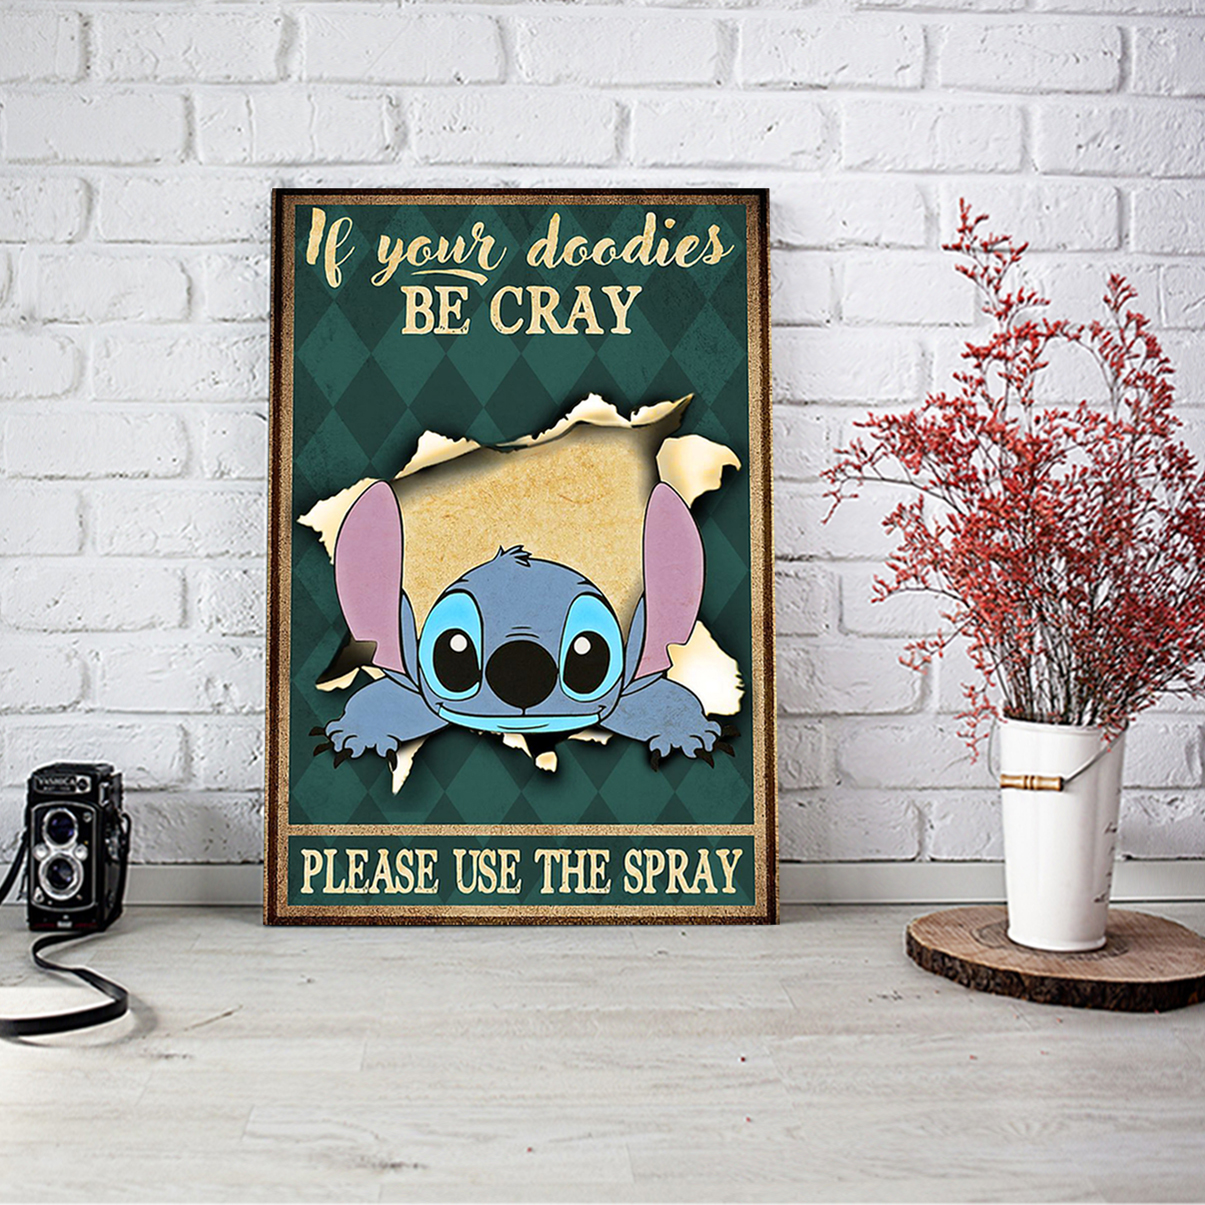 Stitch if your doodies be cray please use the spray poster A3